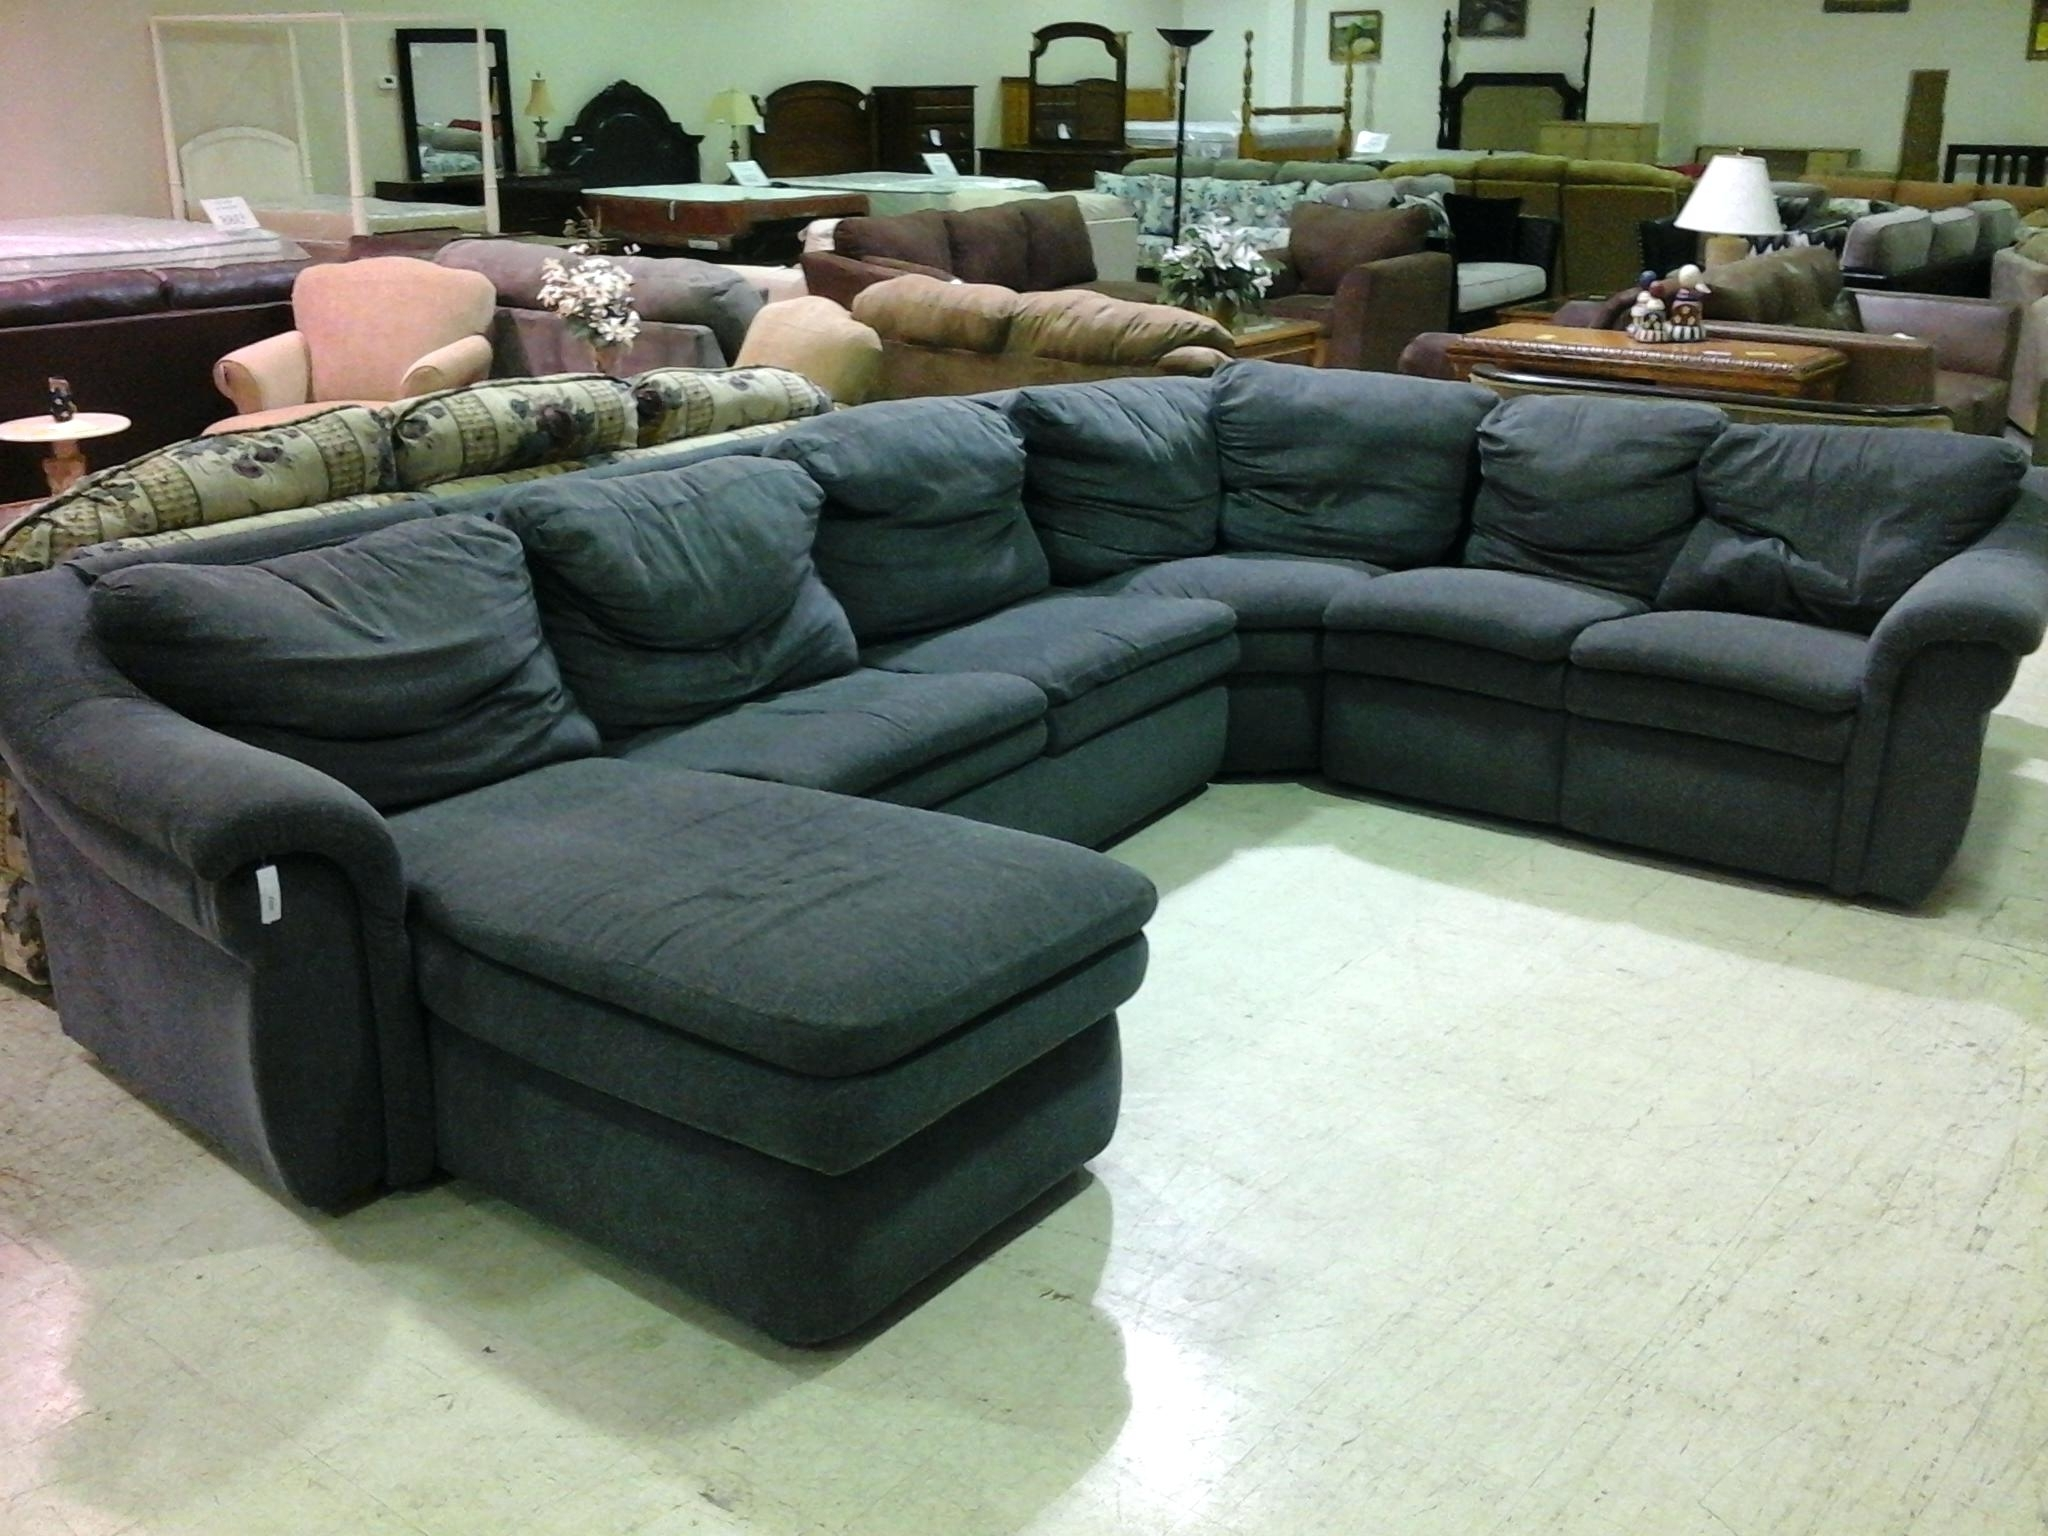 Clearance Sectional Sofas Intended For Well Known Sectional Sofa Sale Sa Couches For Near Me Liquidation Toronto (View 4 of 20)